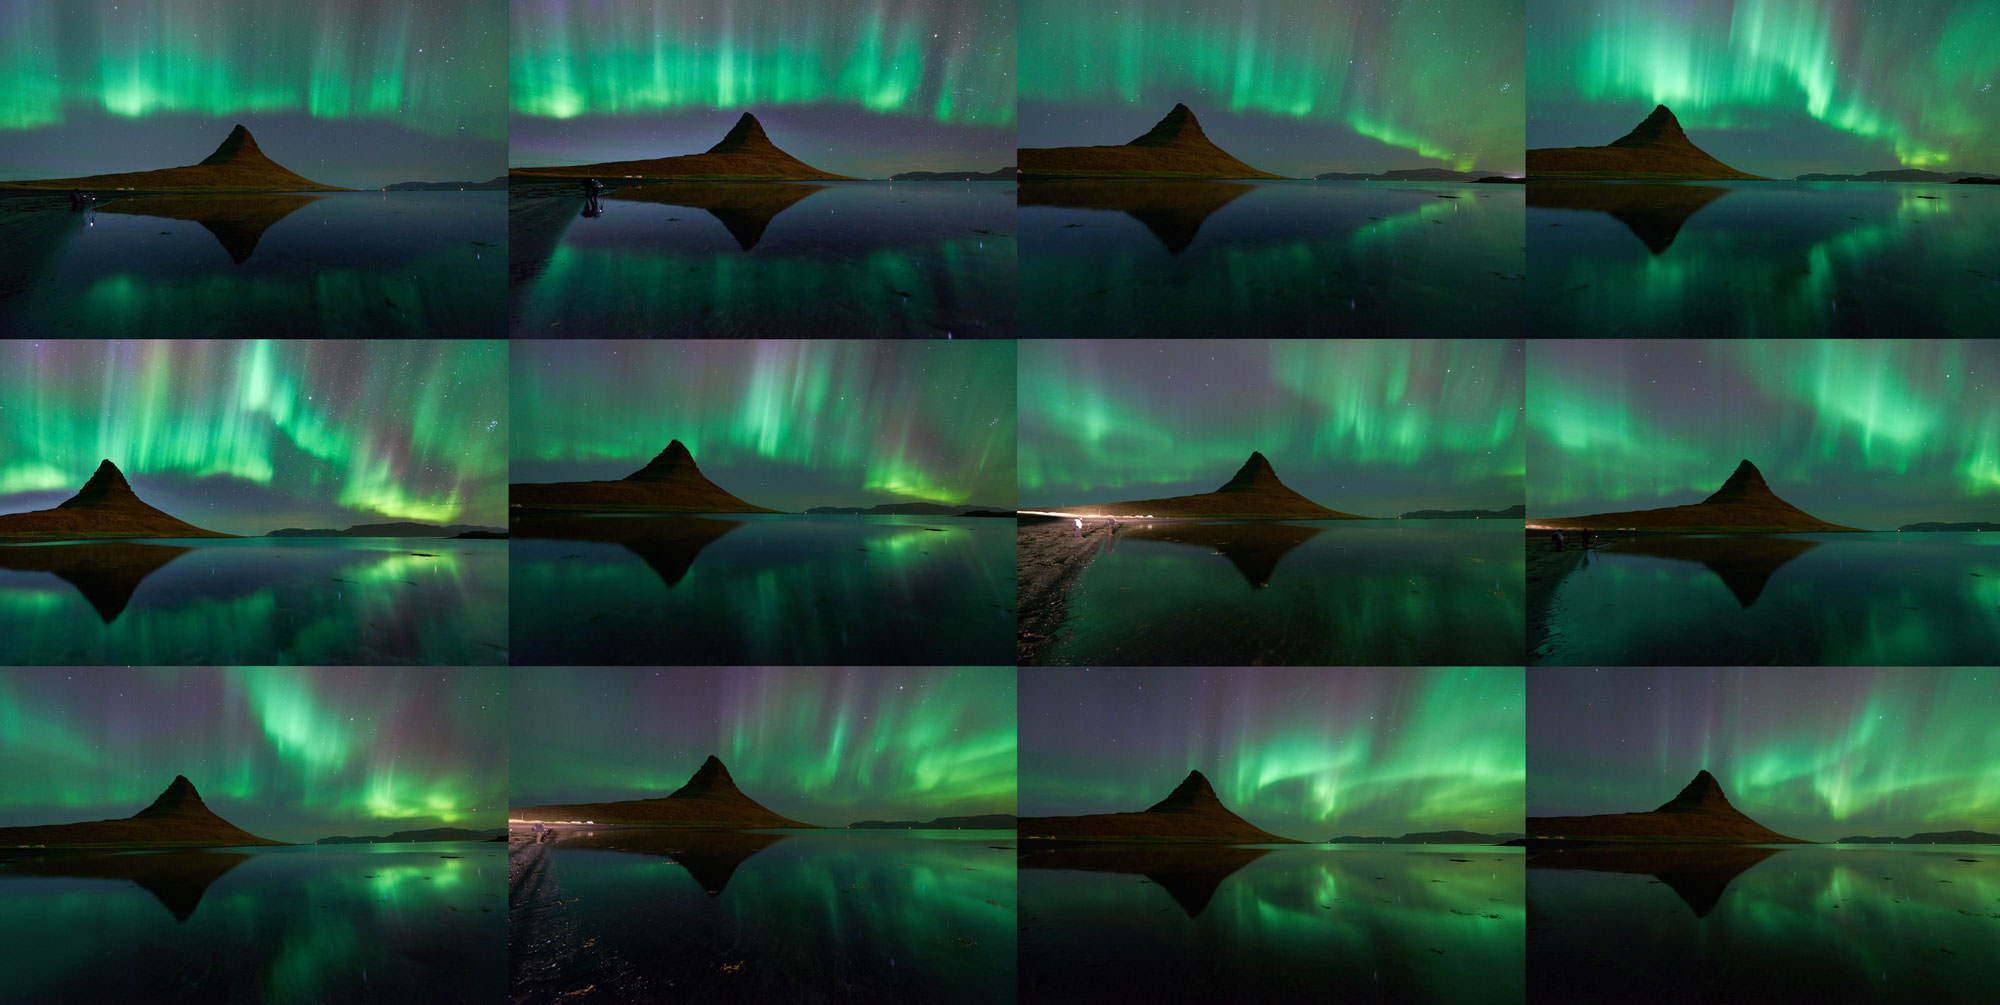 sc 1 st  Photography Life & How to Photograph the Northern Lights - Photography Life